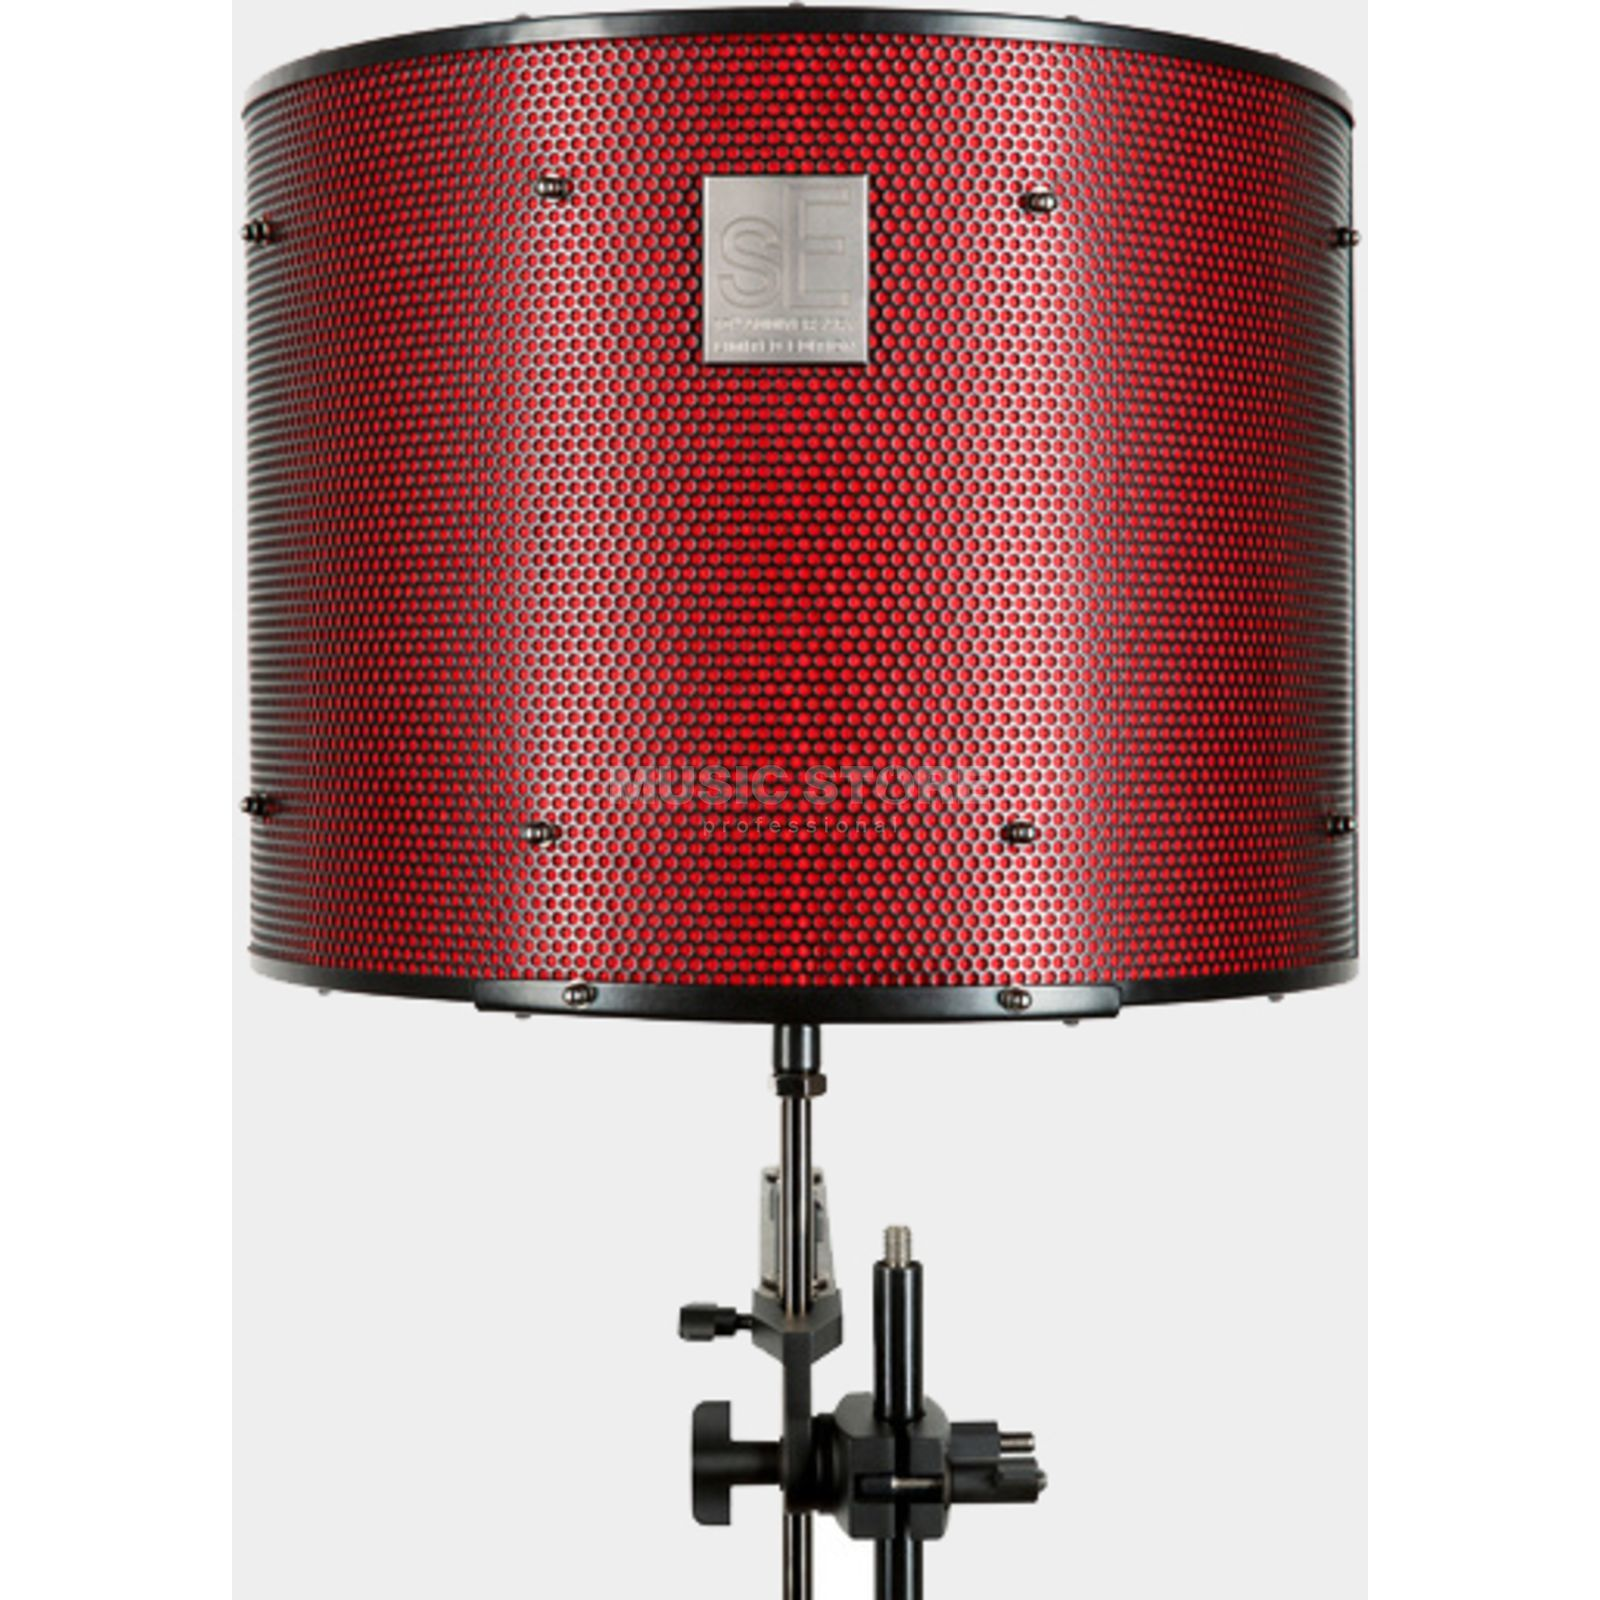 SE electronics Reflexion Filter Pro 10 AE Anniversary Edition Product Image